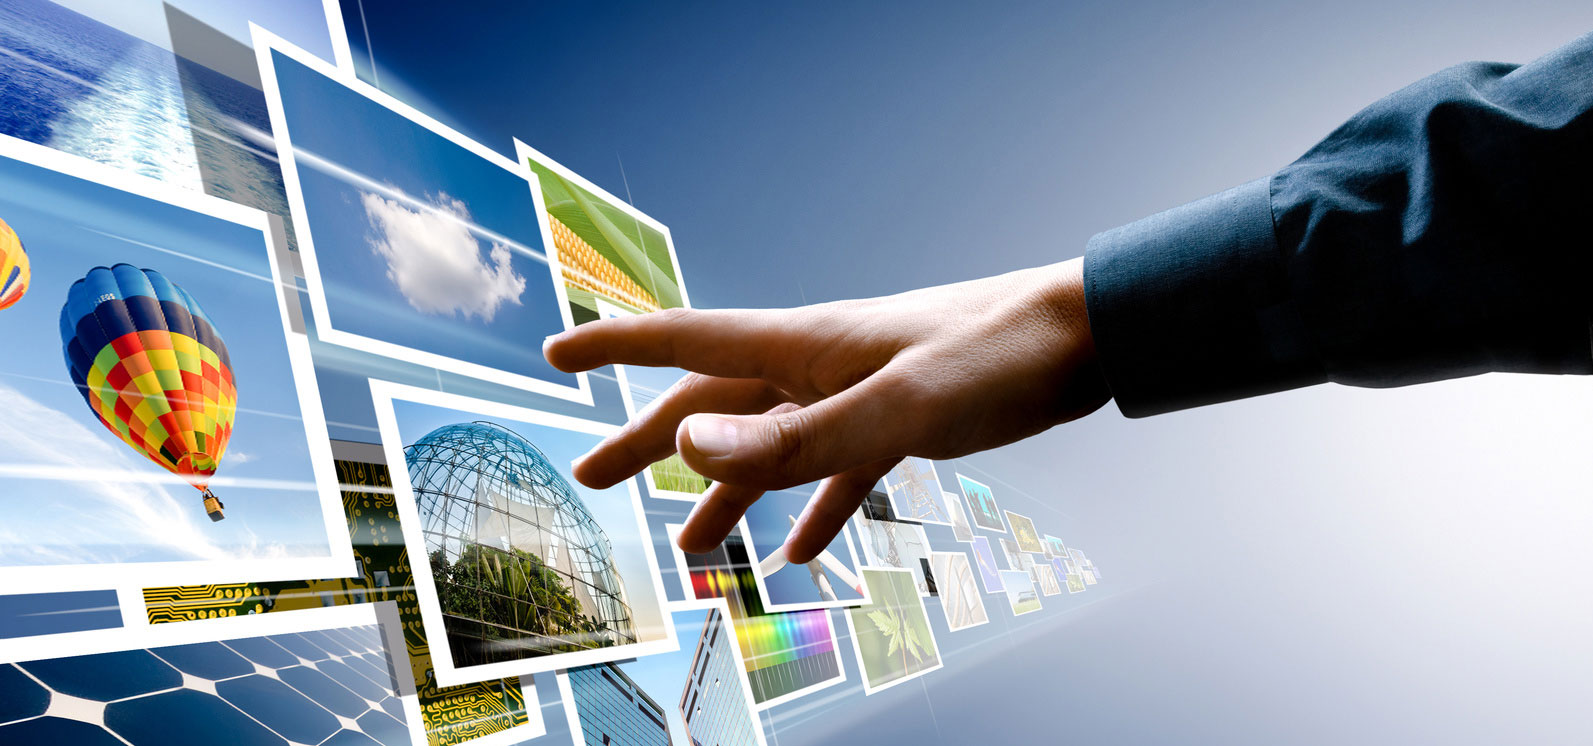 Reach out and touch digital signage